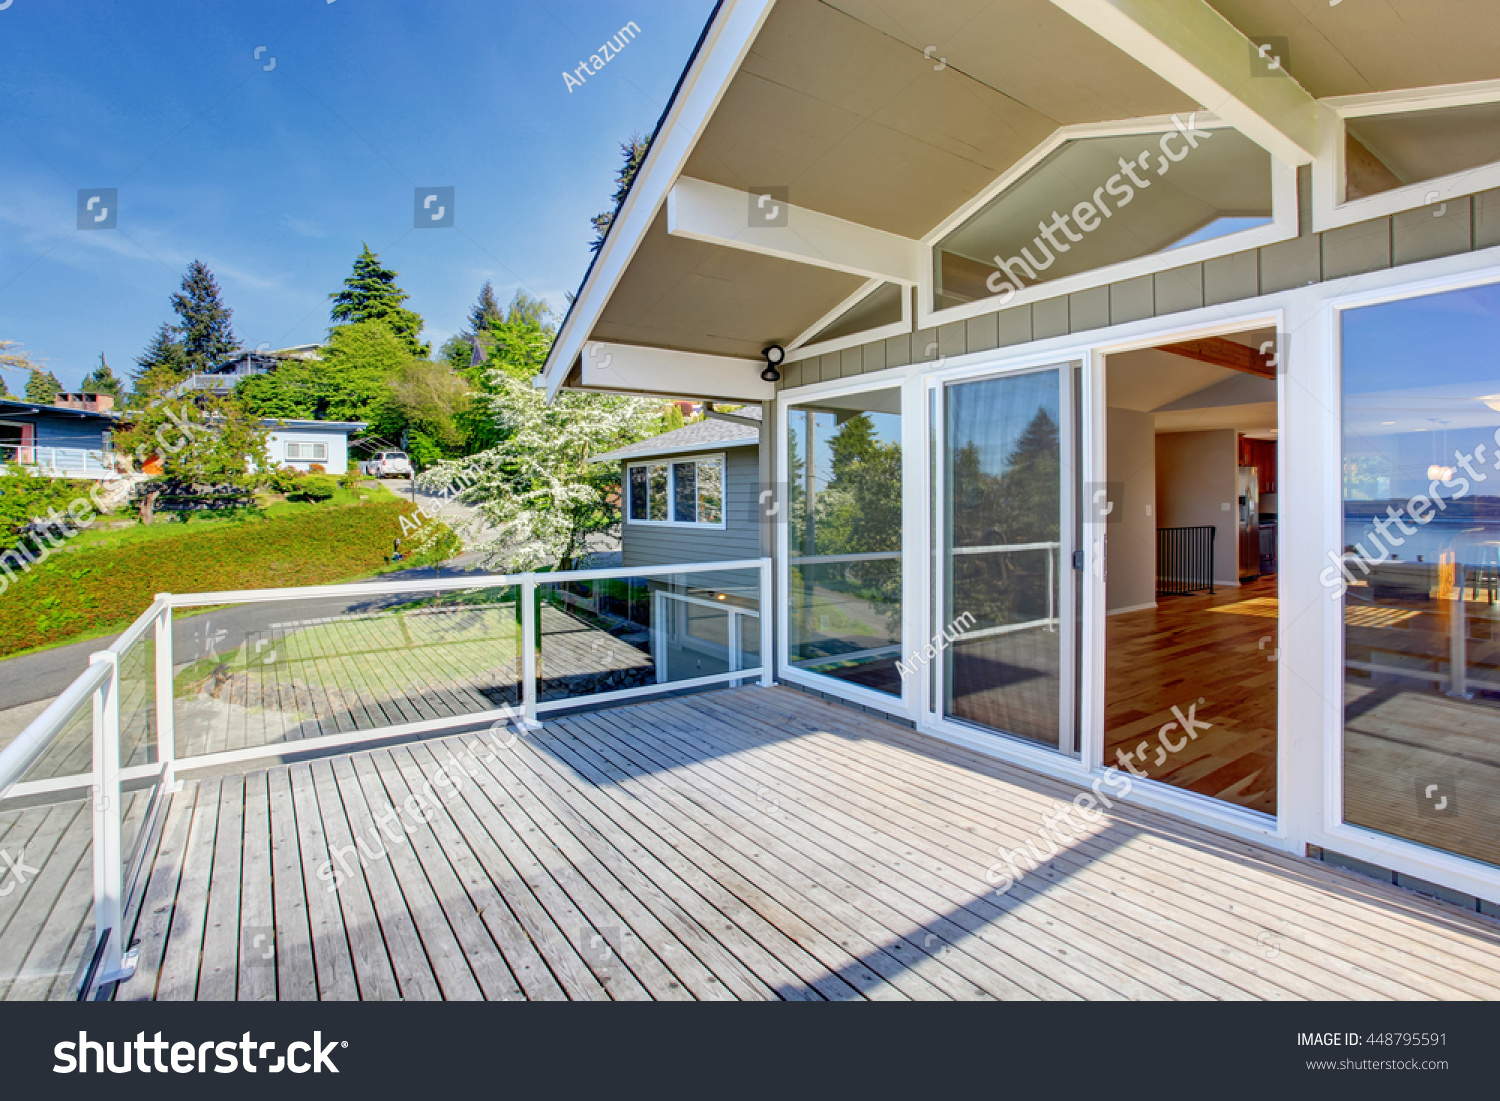 Balcony house exterior glass railings perfect stock photo 448795591 shutterstock - House plans with glass terrace perfect views ...